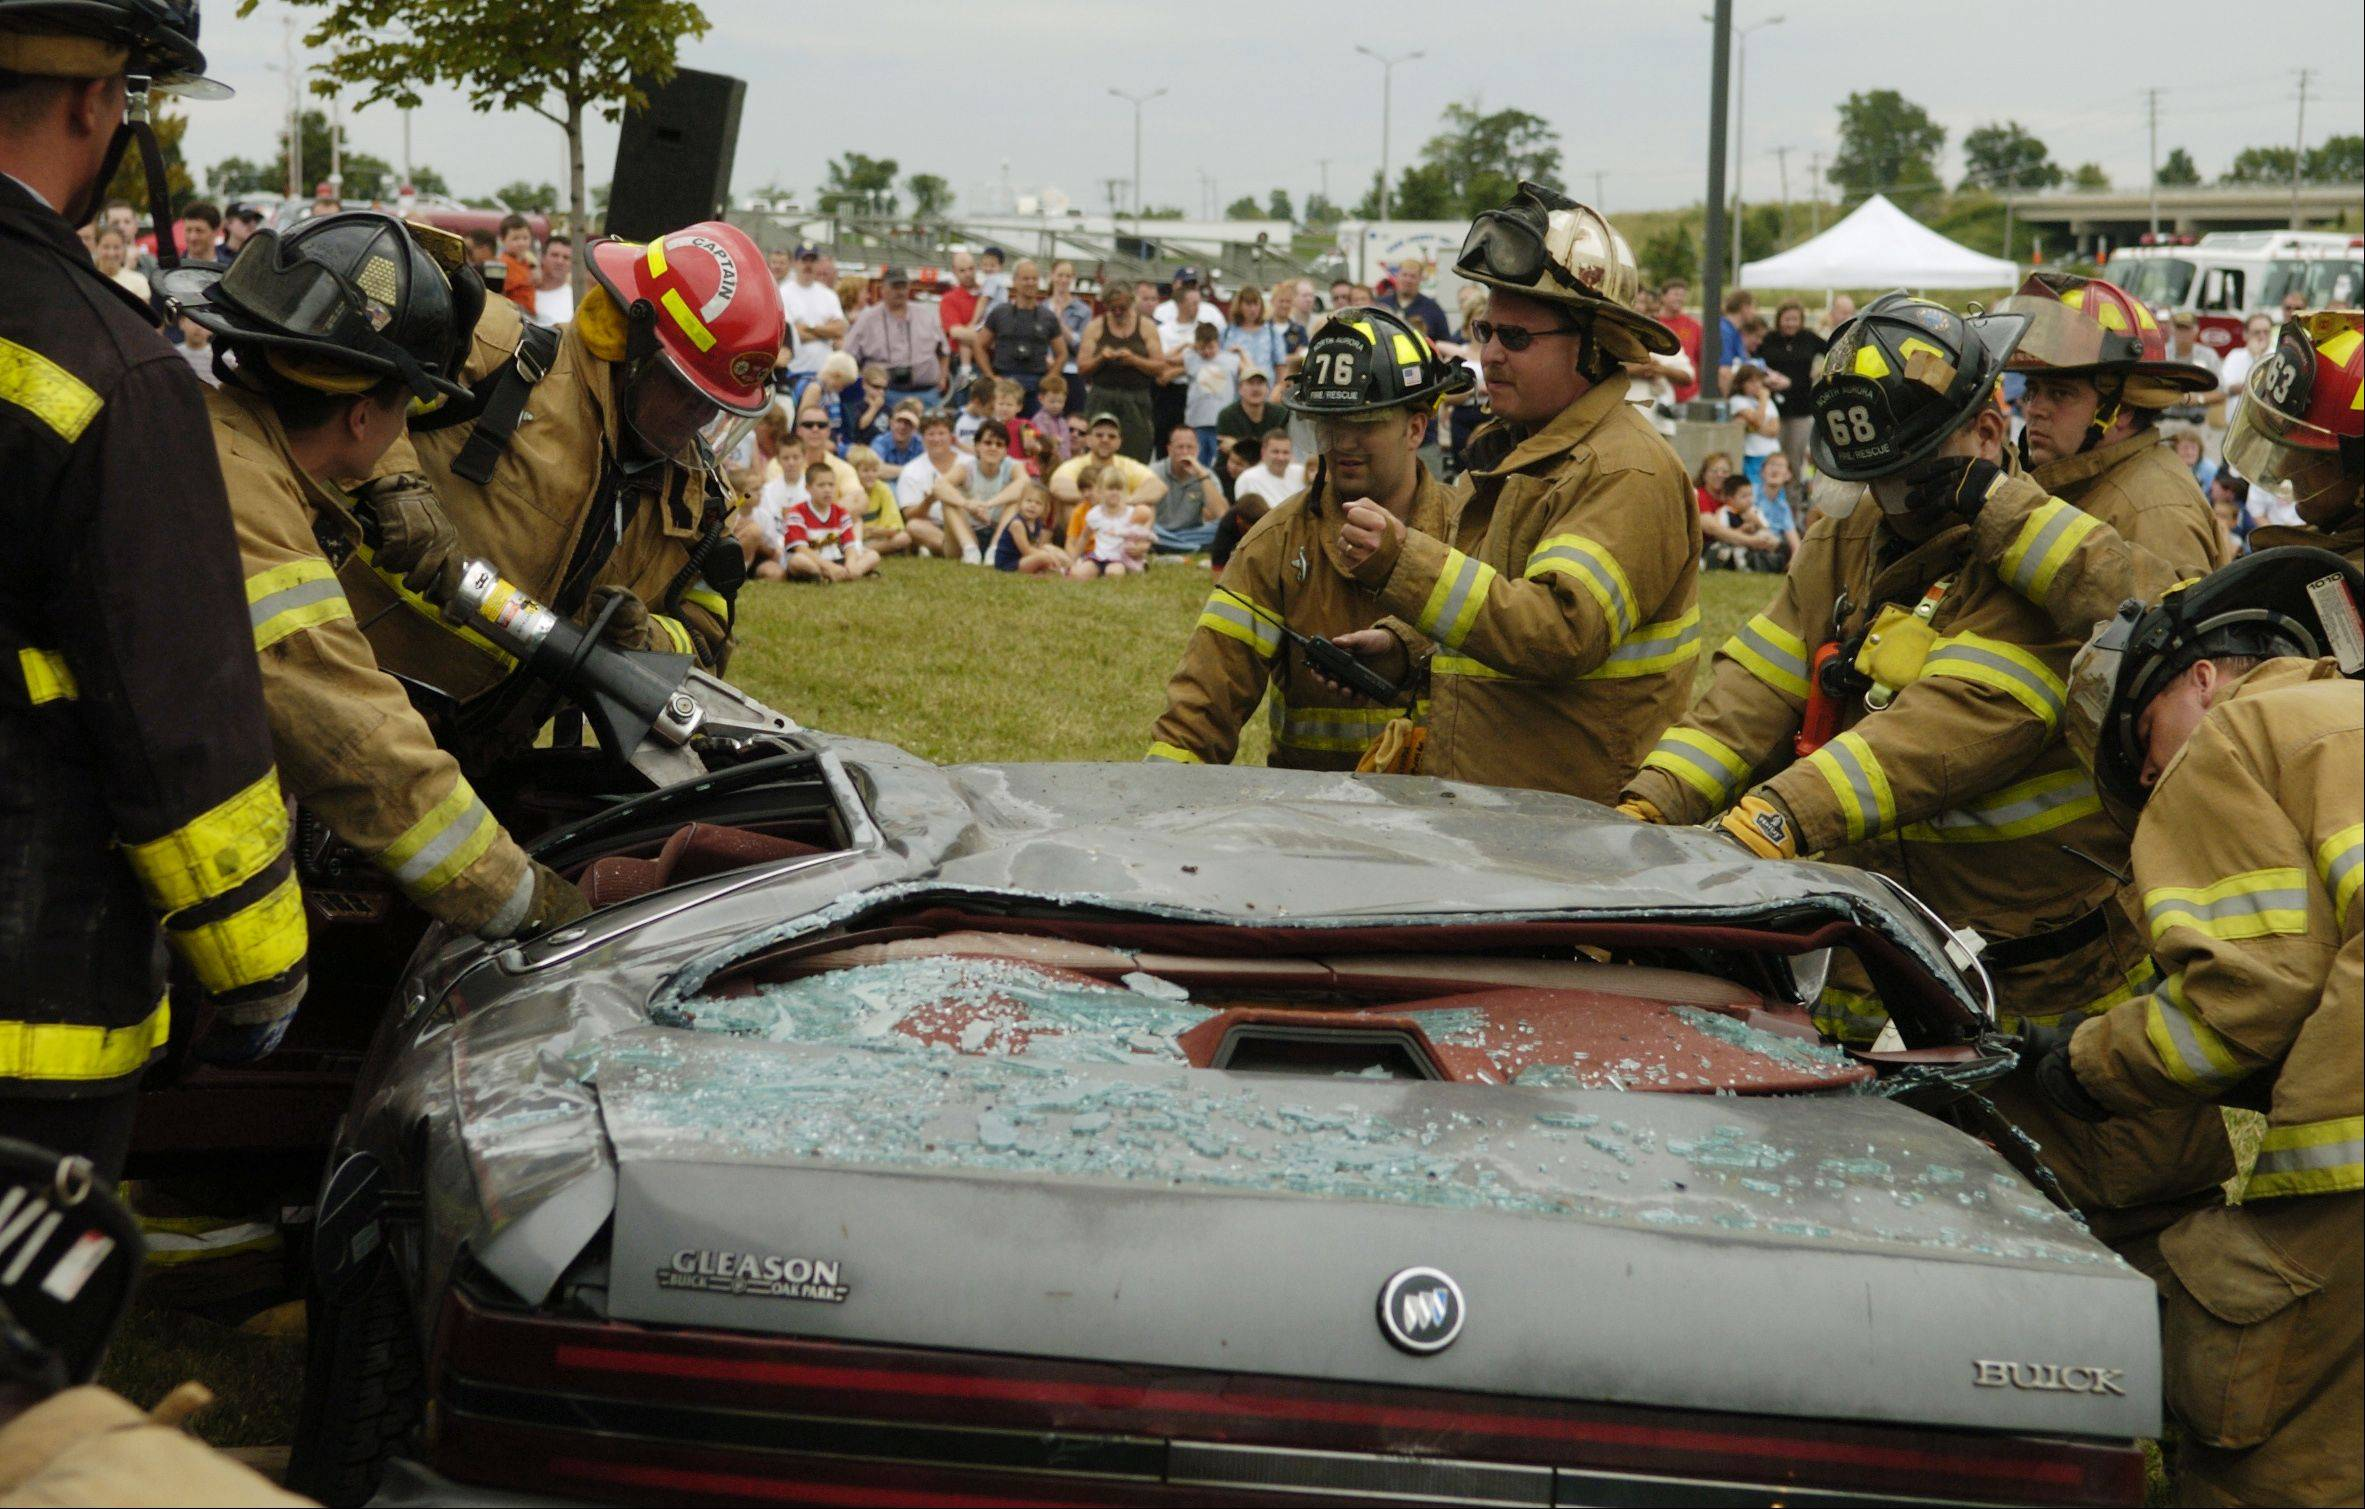 During a demonstration at last year's North Aurora Days' Emergency Vehicle Show, North Aurora firefighters work to extricate the driver of a vehicle that was smashed by a truck.